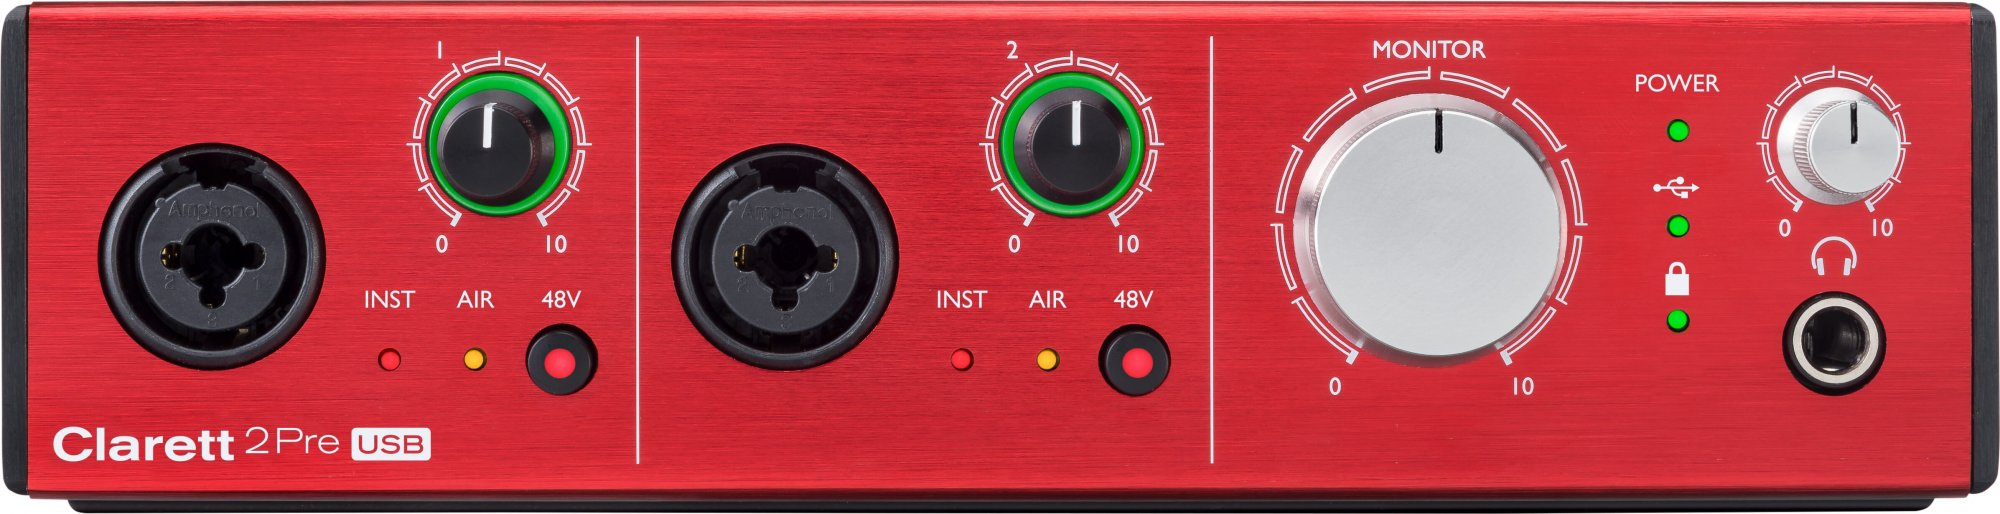 FOCUSRITE CLARETT 2PRE USB AUDIO INTERFACE 10 IN, 4 OUT FOR PC & MAC